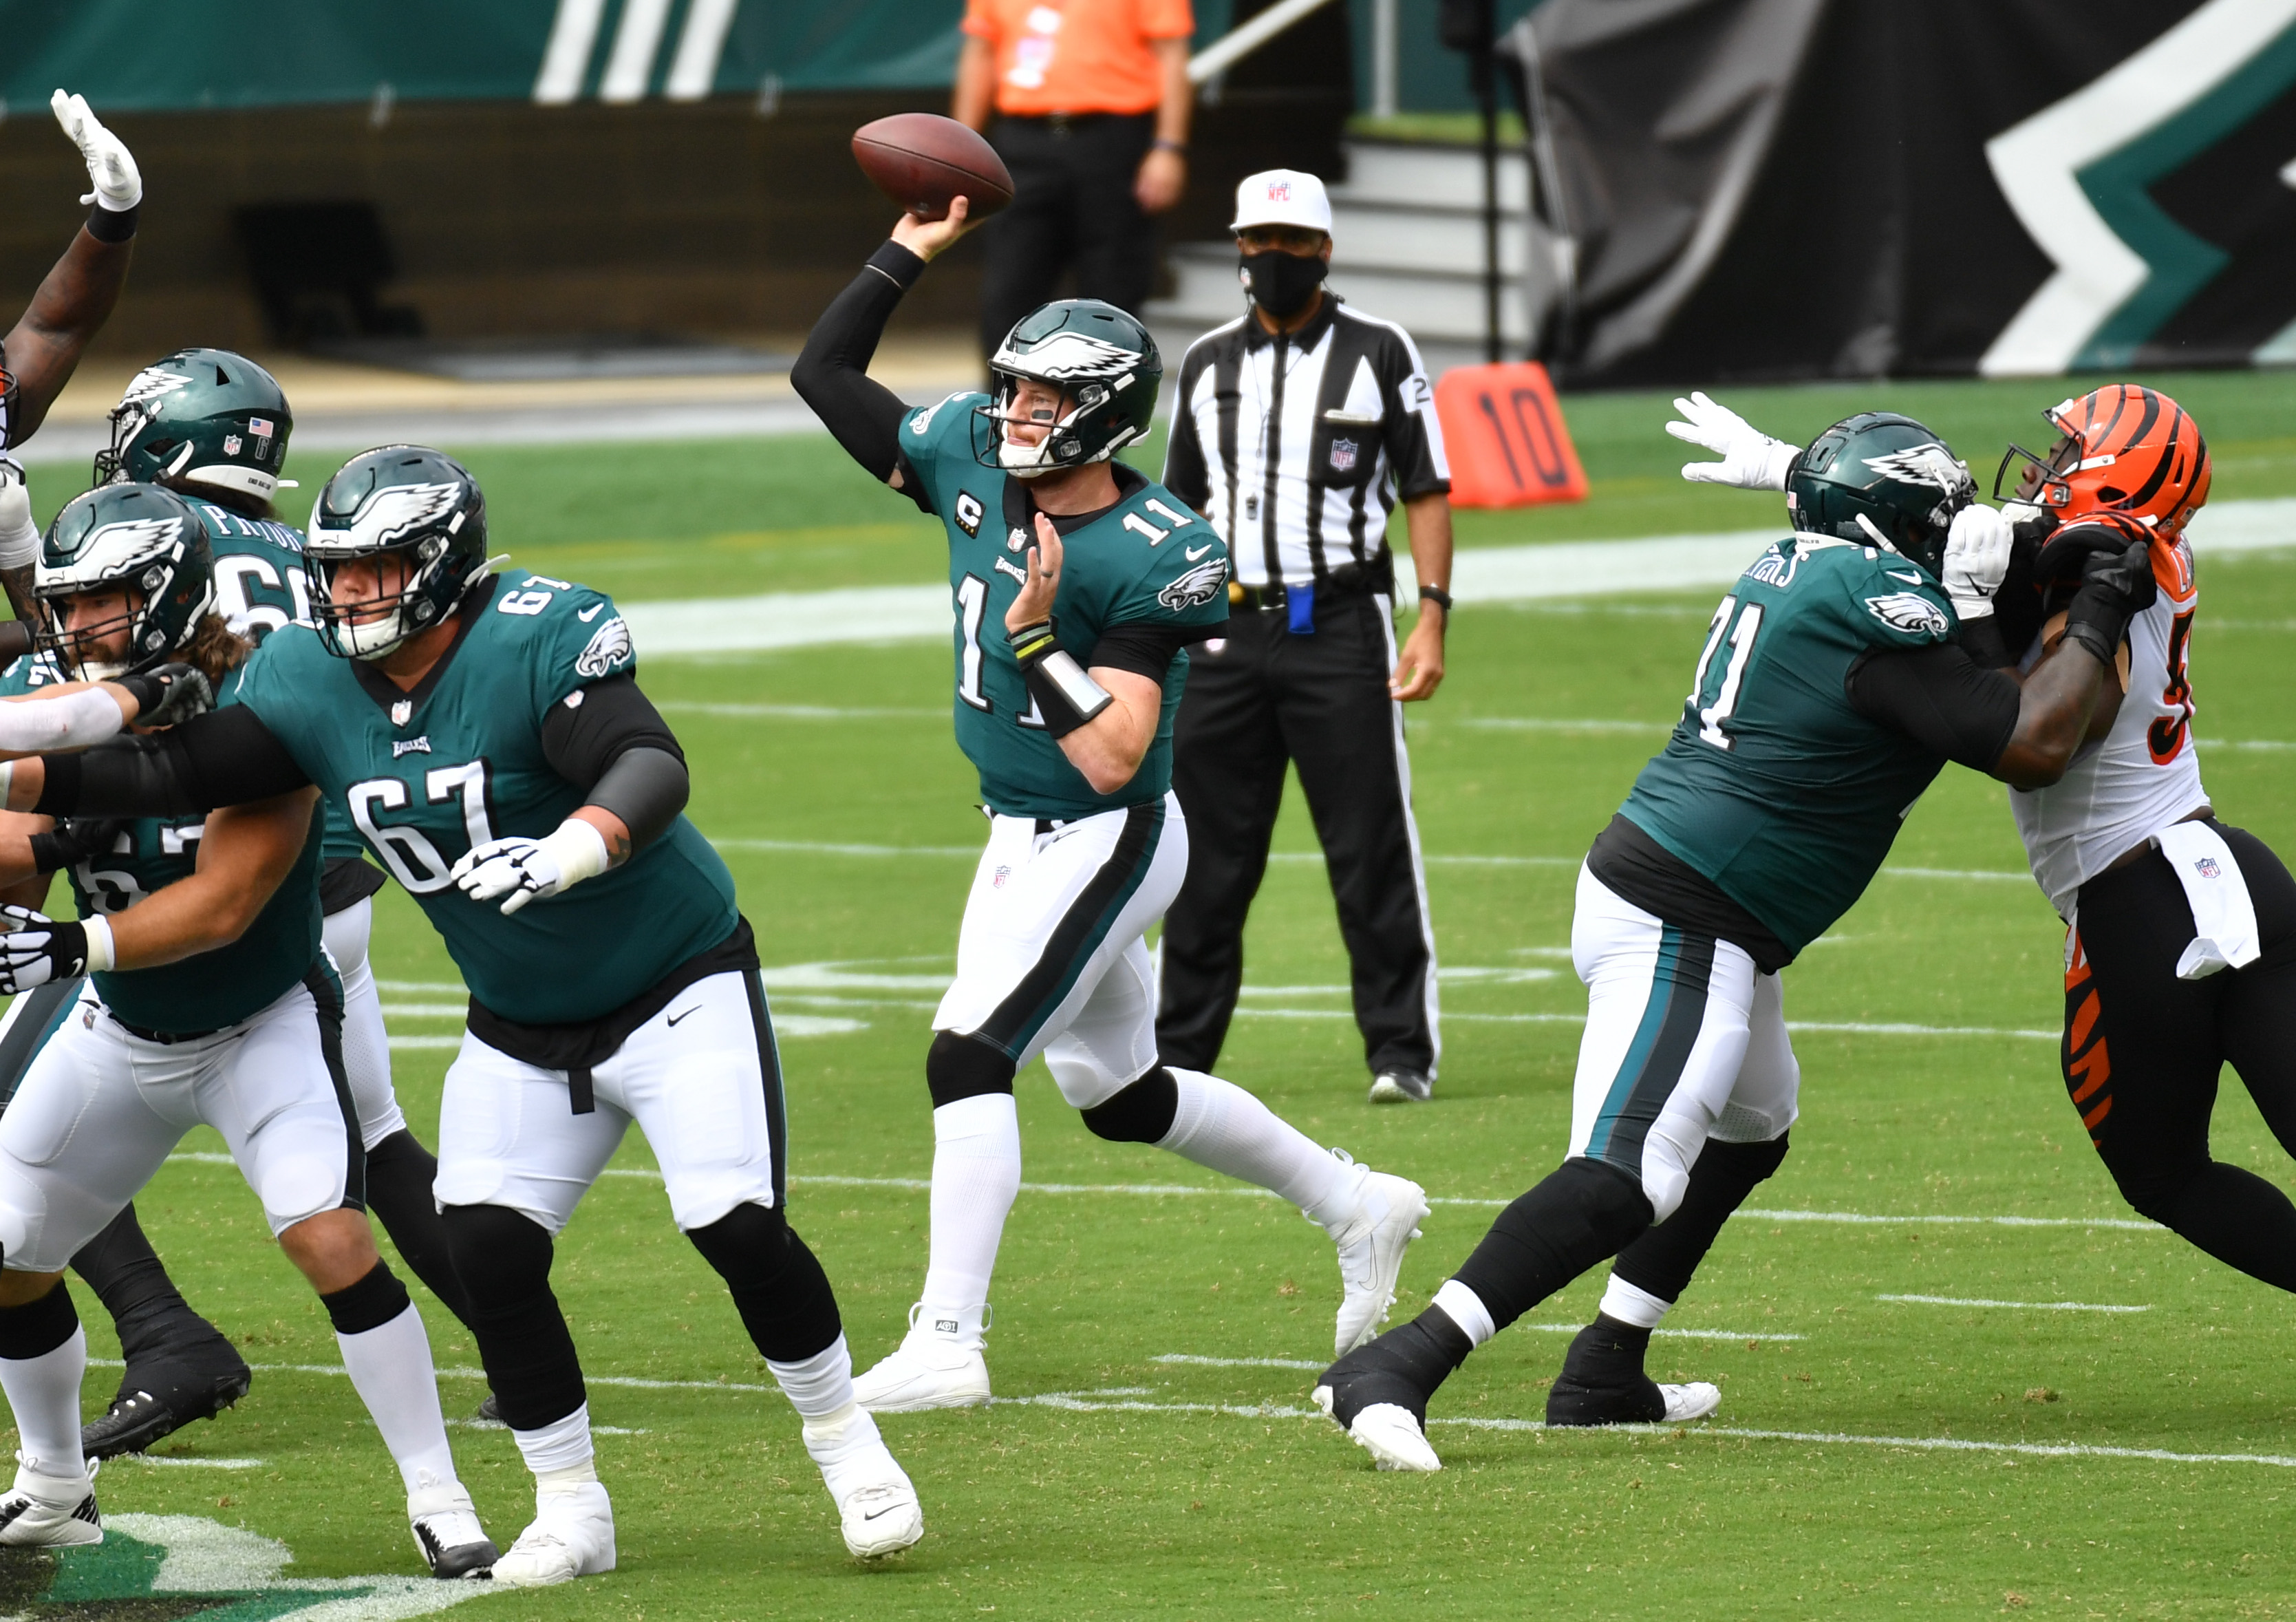 Week 4 Preview: Eagles looking for first win against 49ers